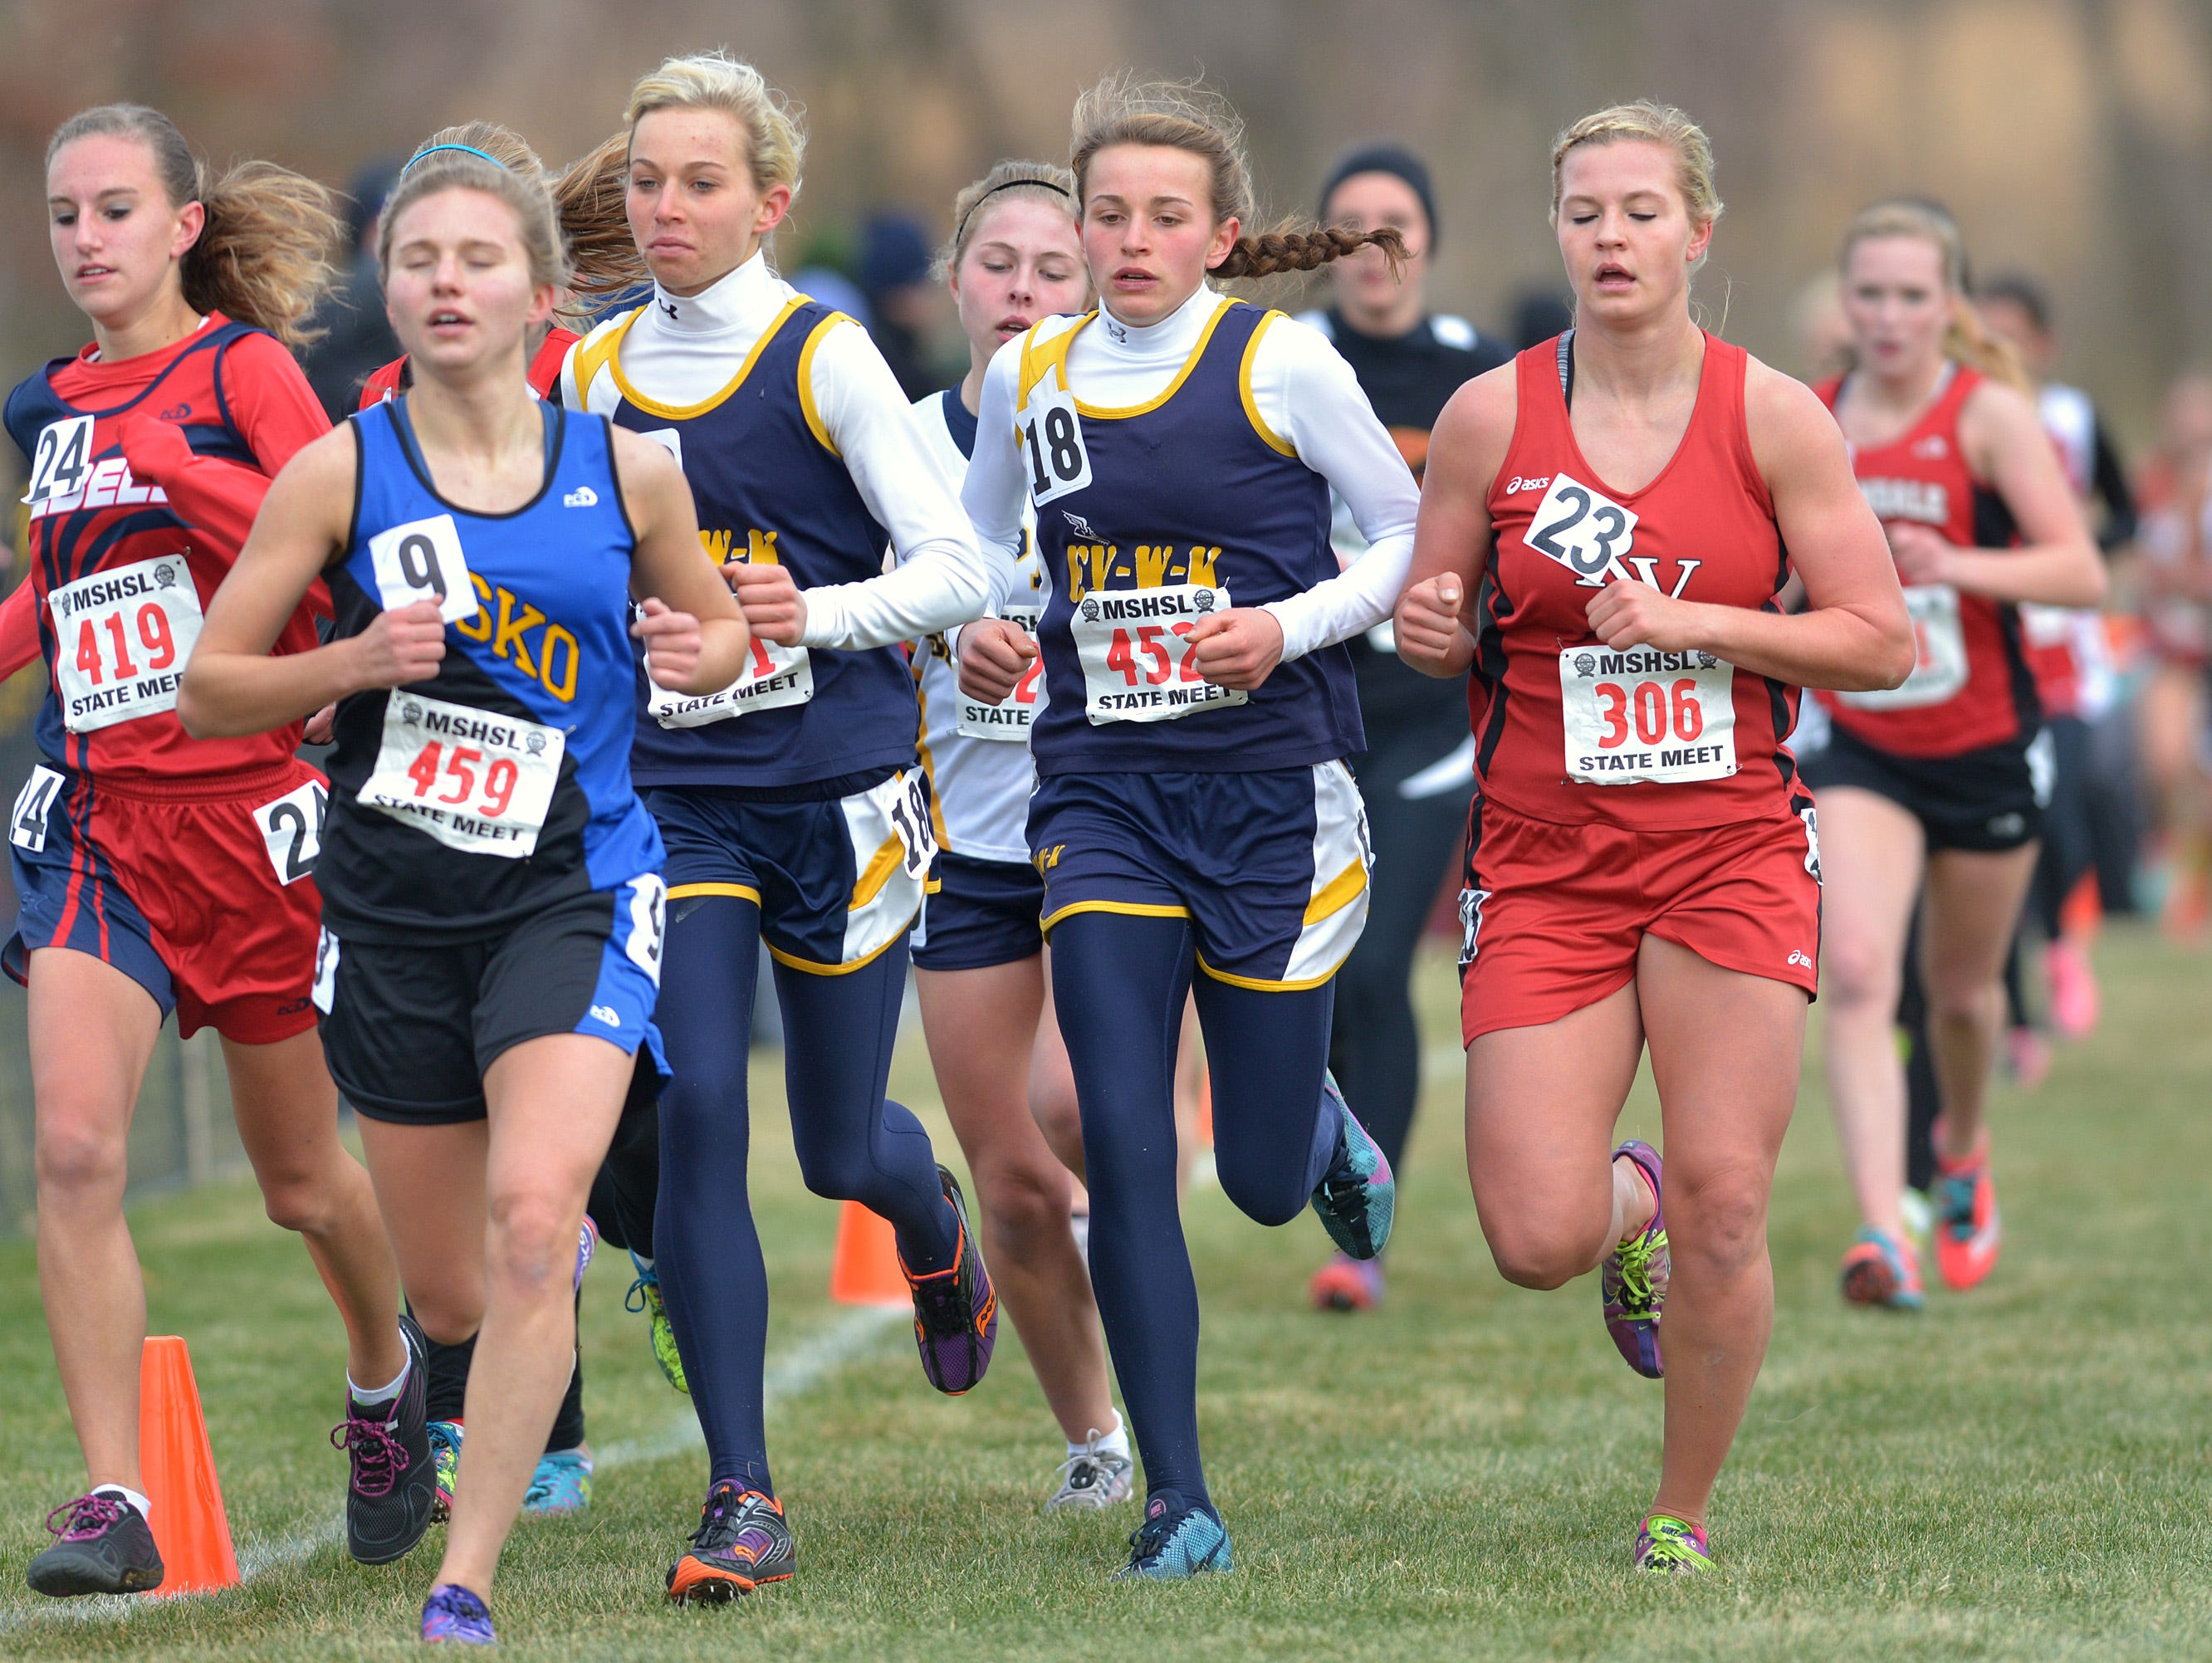 Eden Valley-Watkins/Kimball's Anna Donnay (452) runs alongside her sister Emily (451) at the state meet last season in Northfield. She finished third a year ago and is back at state again this season.